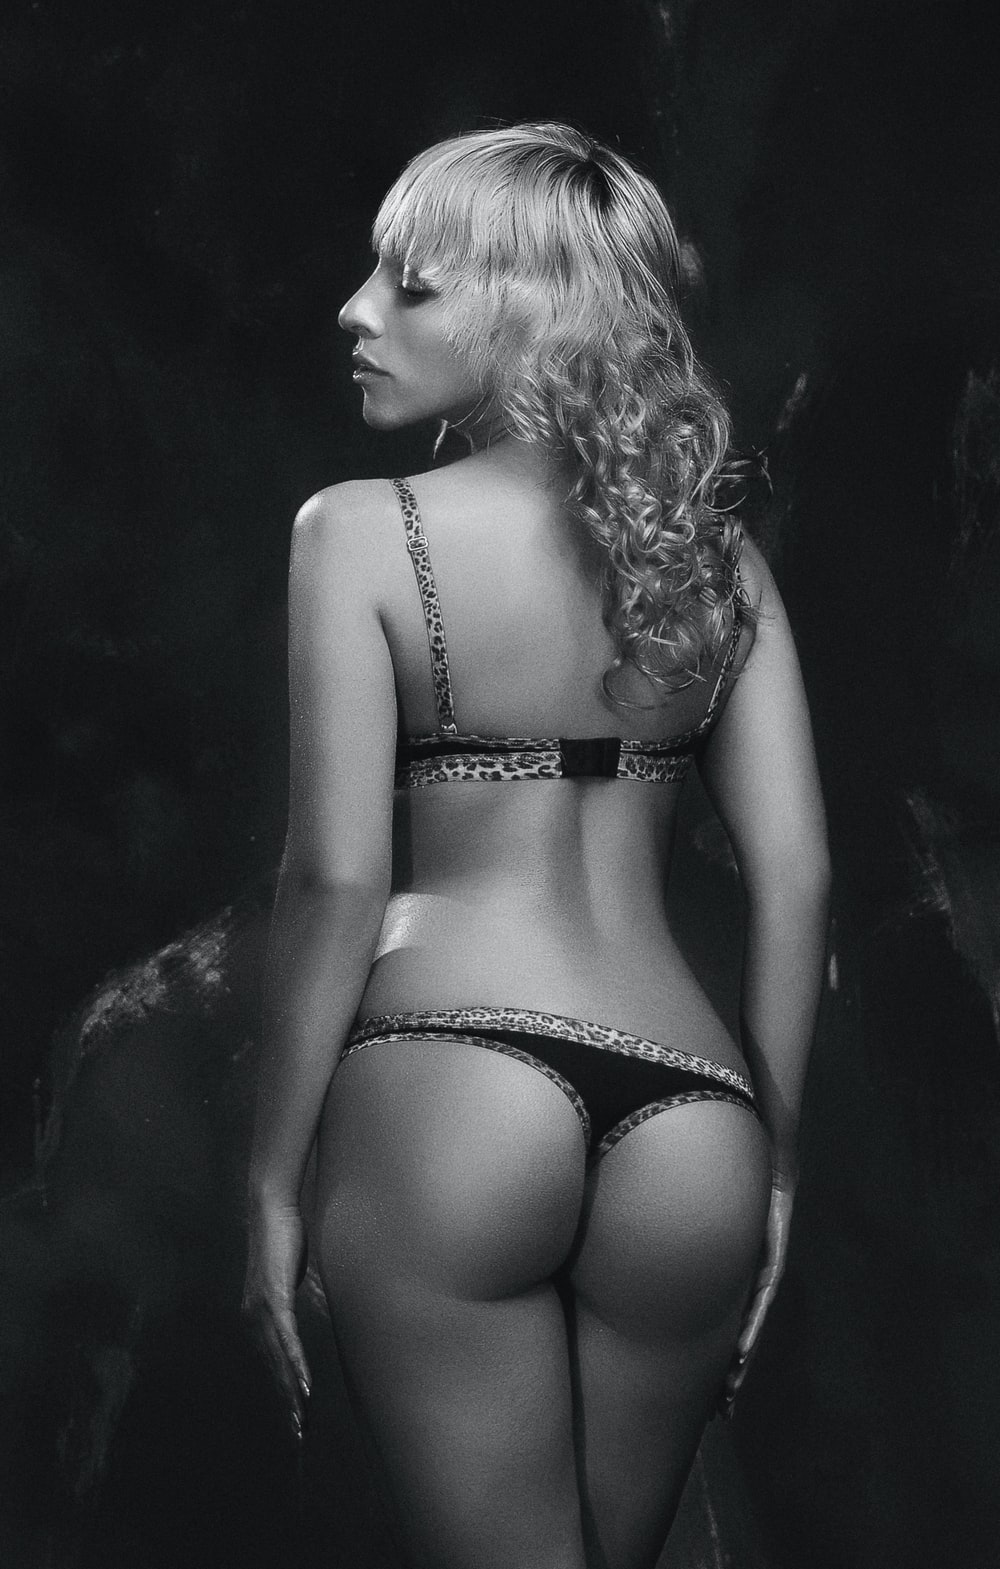 women's black-and-gray brassiere and panty set